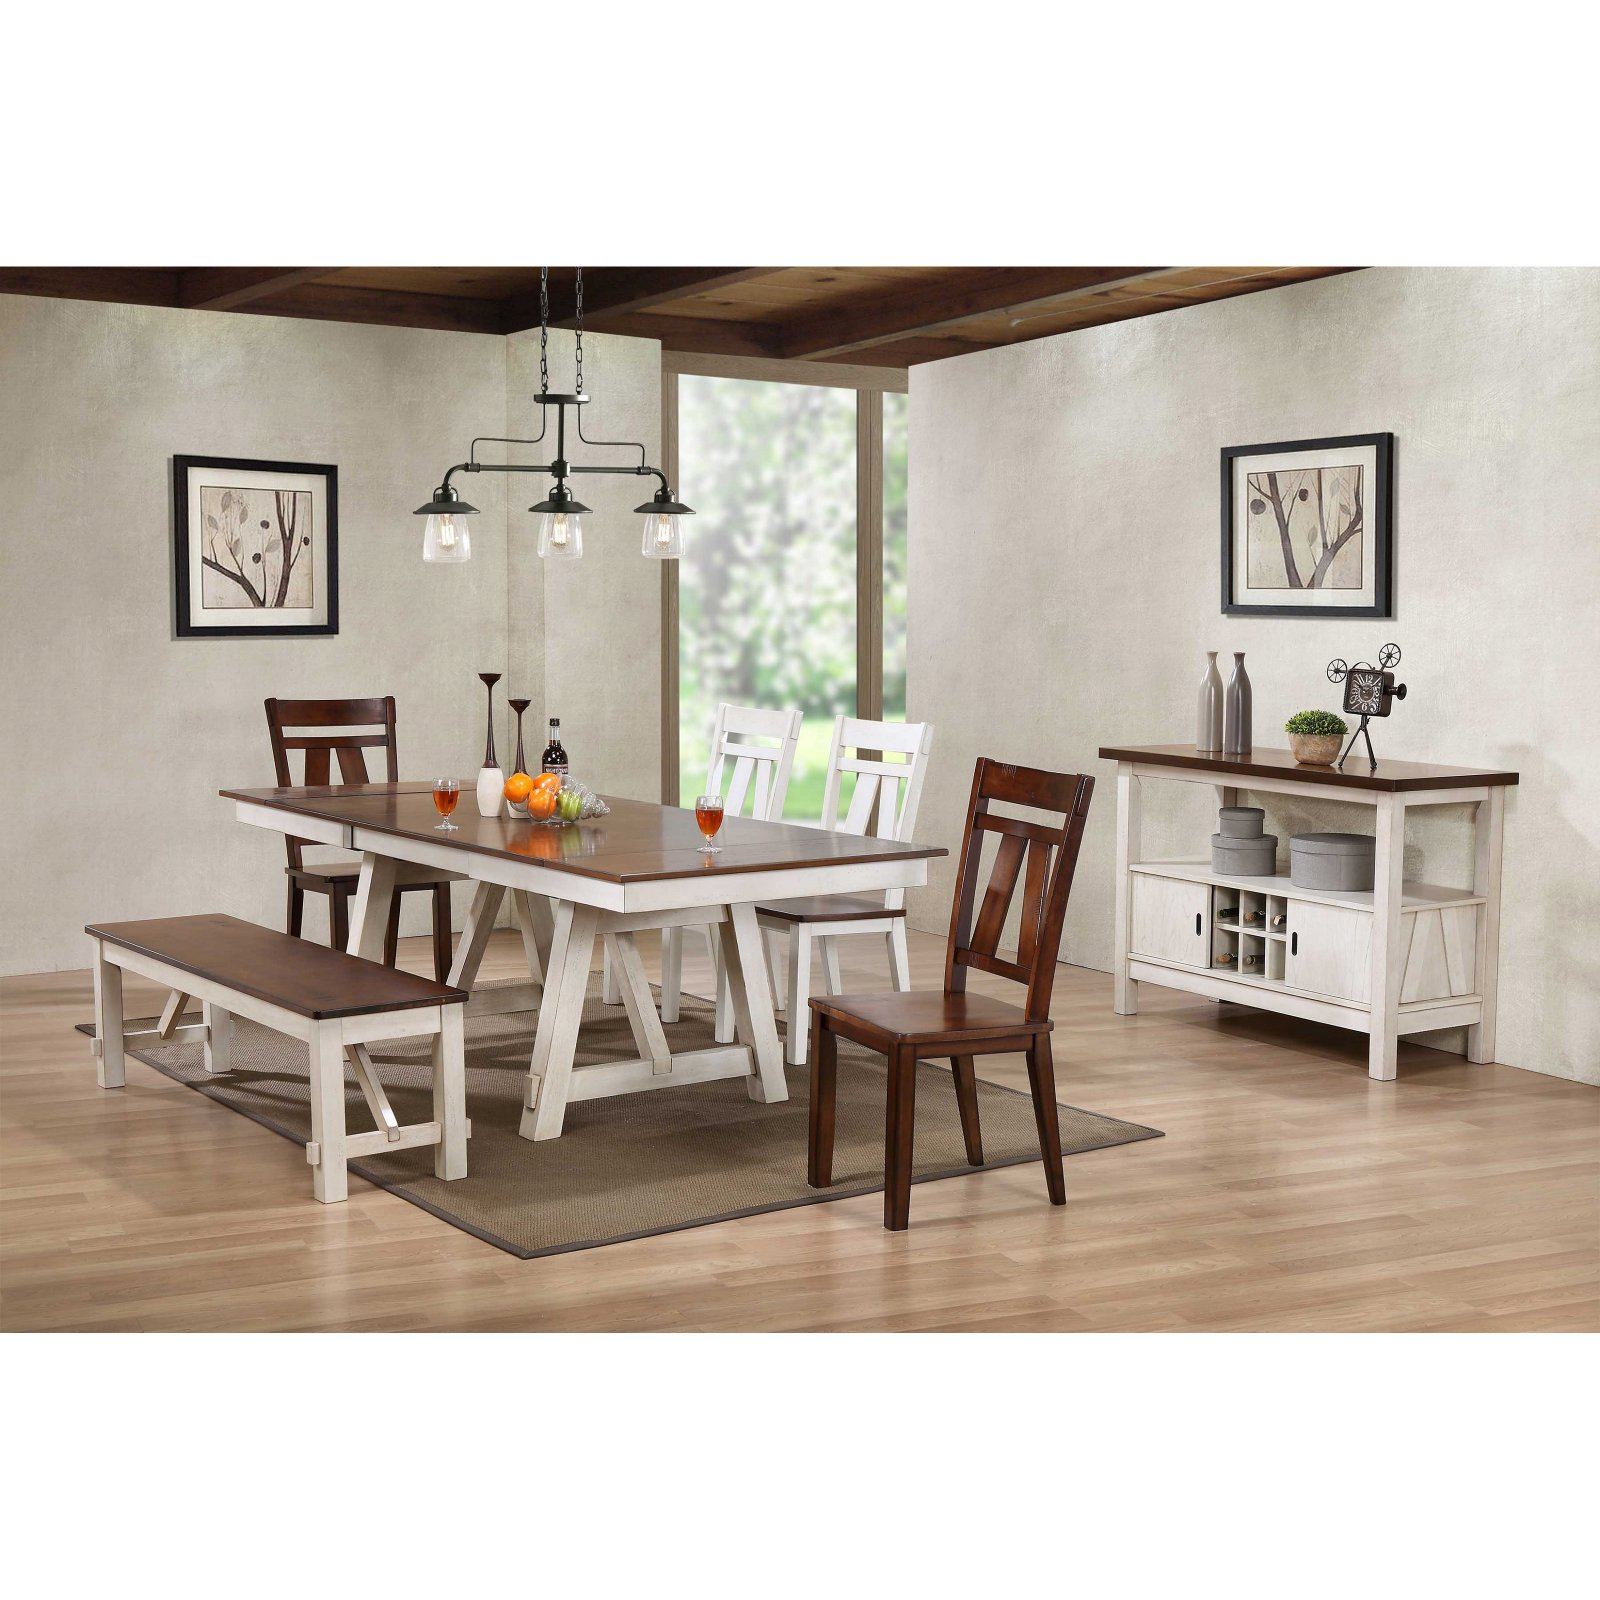 Bernards Winslow Casual Dining Table - Walmart.com - Walmart.com